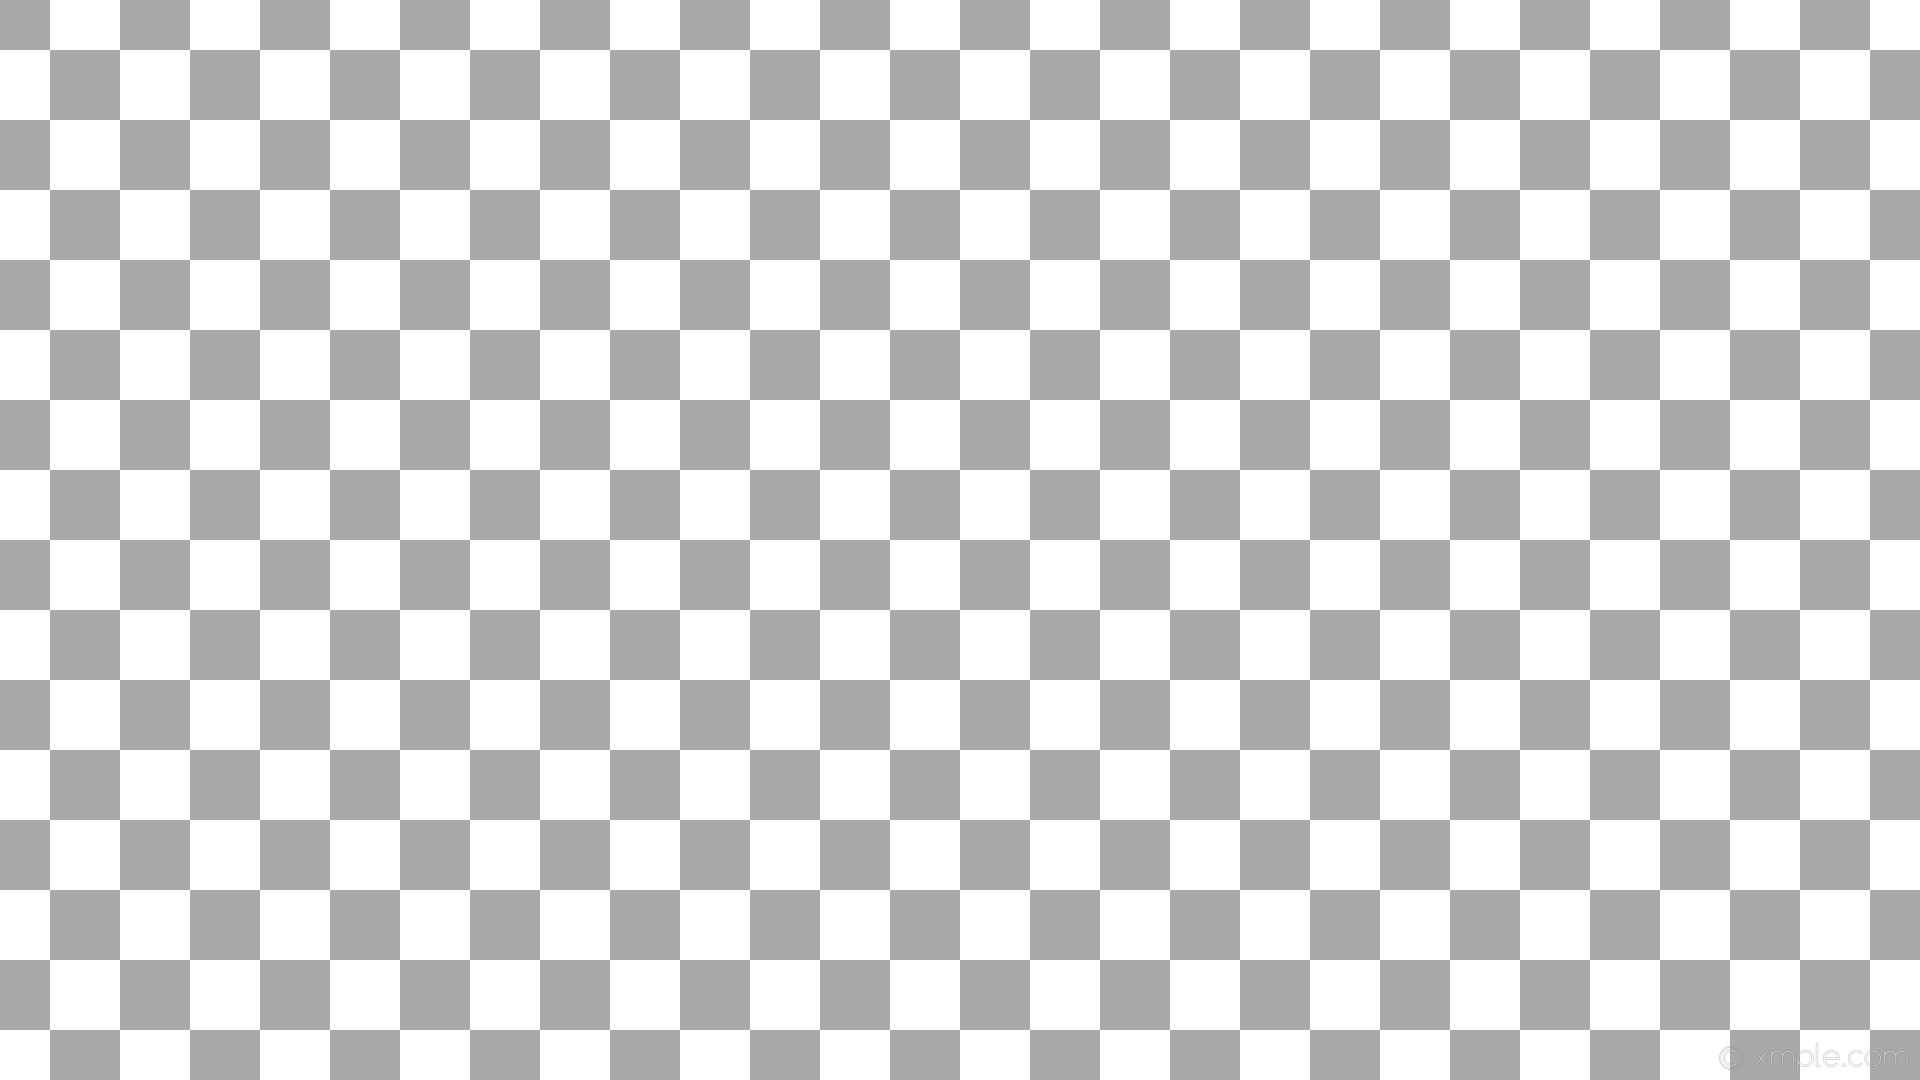 1920x1080 Wallpaper Black White Checkered Squares Azure 000000 F0ffff Diagonal 45A 70px